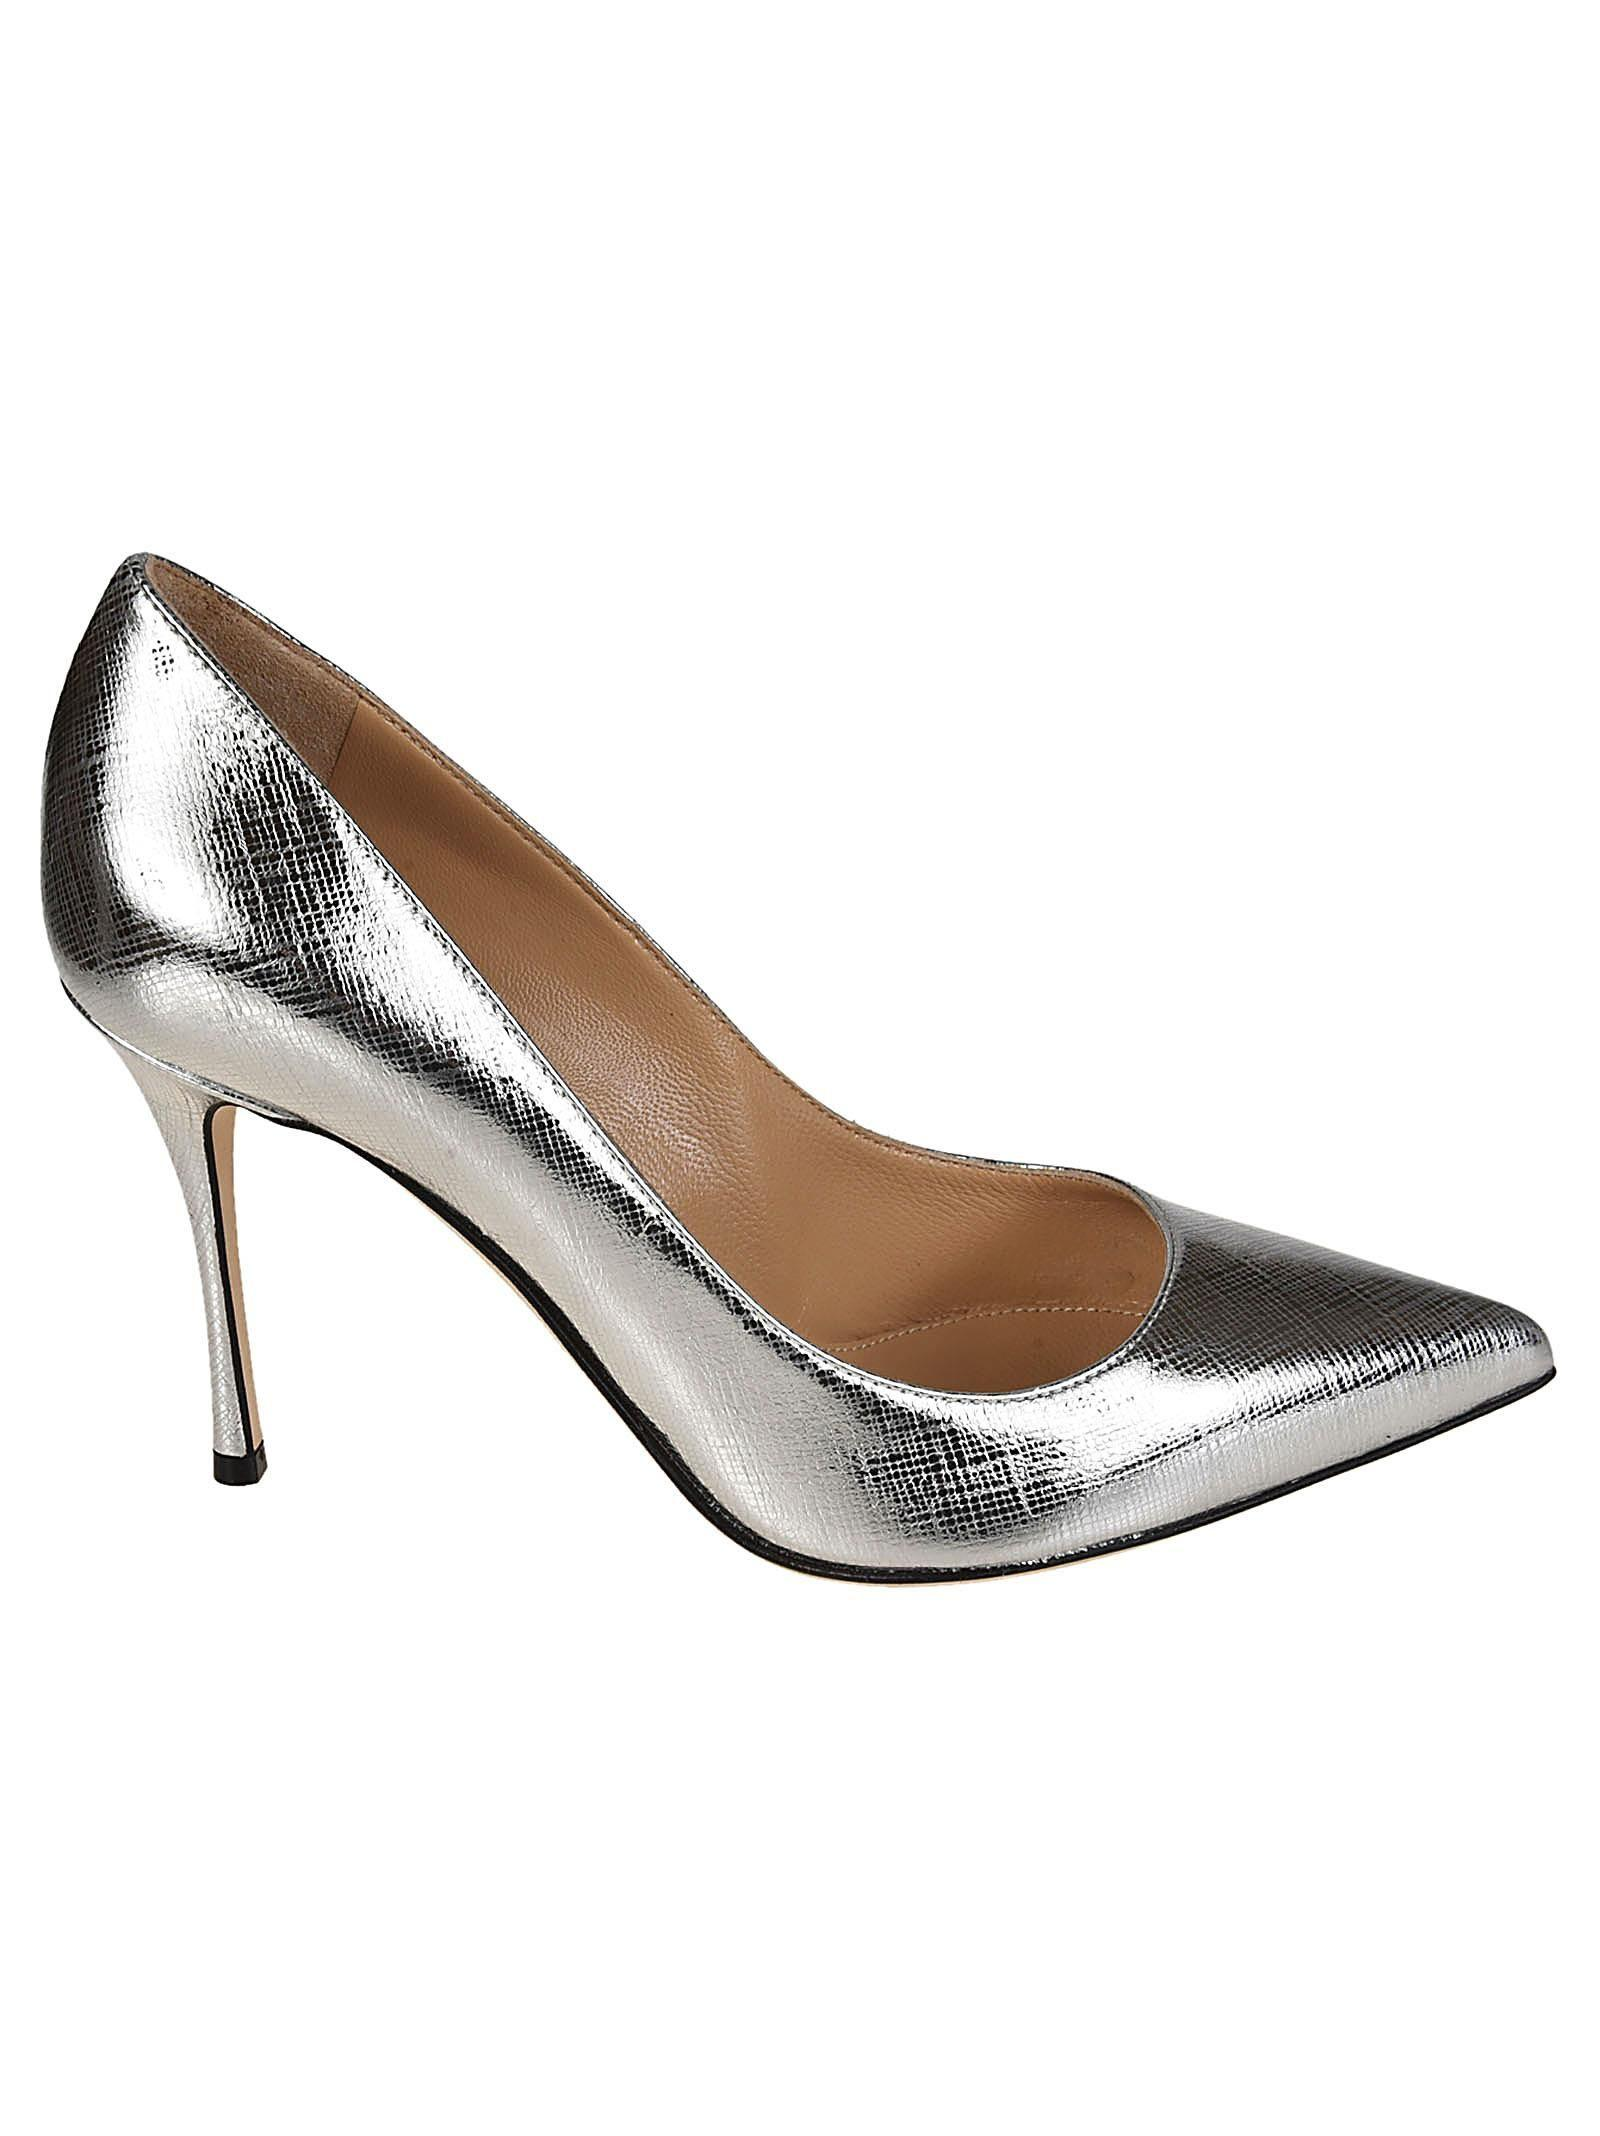 a79f644c70 Sergio Rossi Silver Leather Pumps in Metallic - Lyst